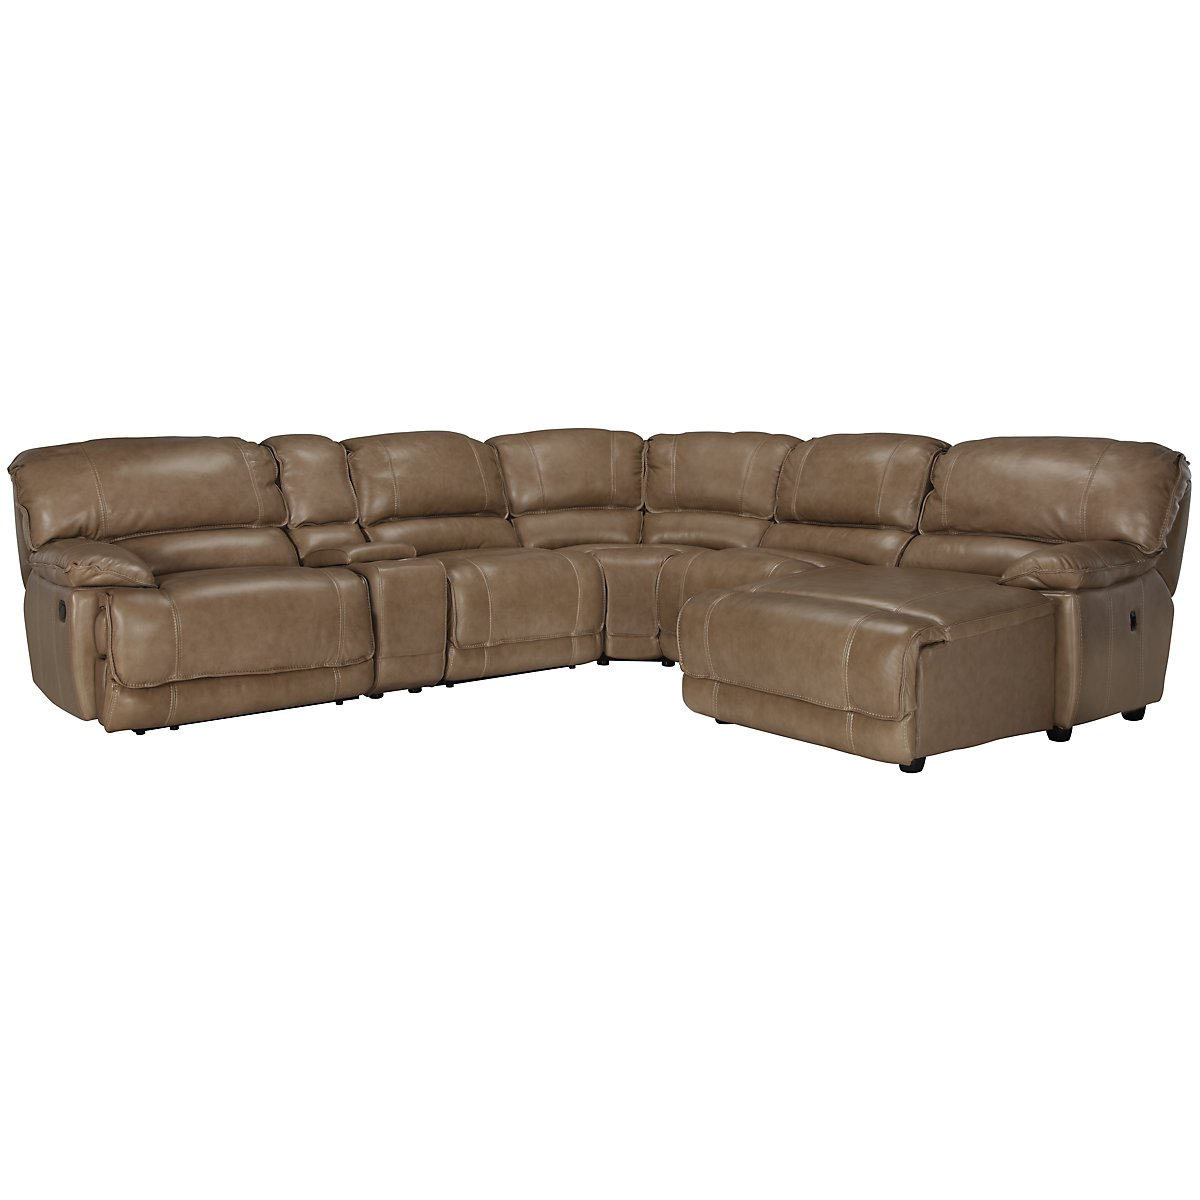 Benson Dark Taupe Leather & Vinyl Right Chaise Manually Reclining Sectional